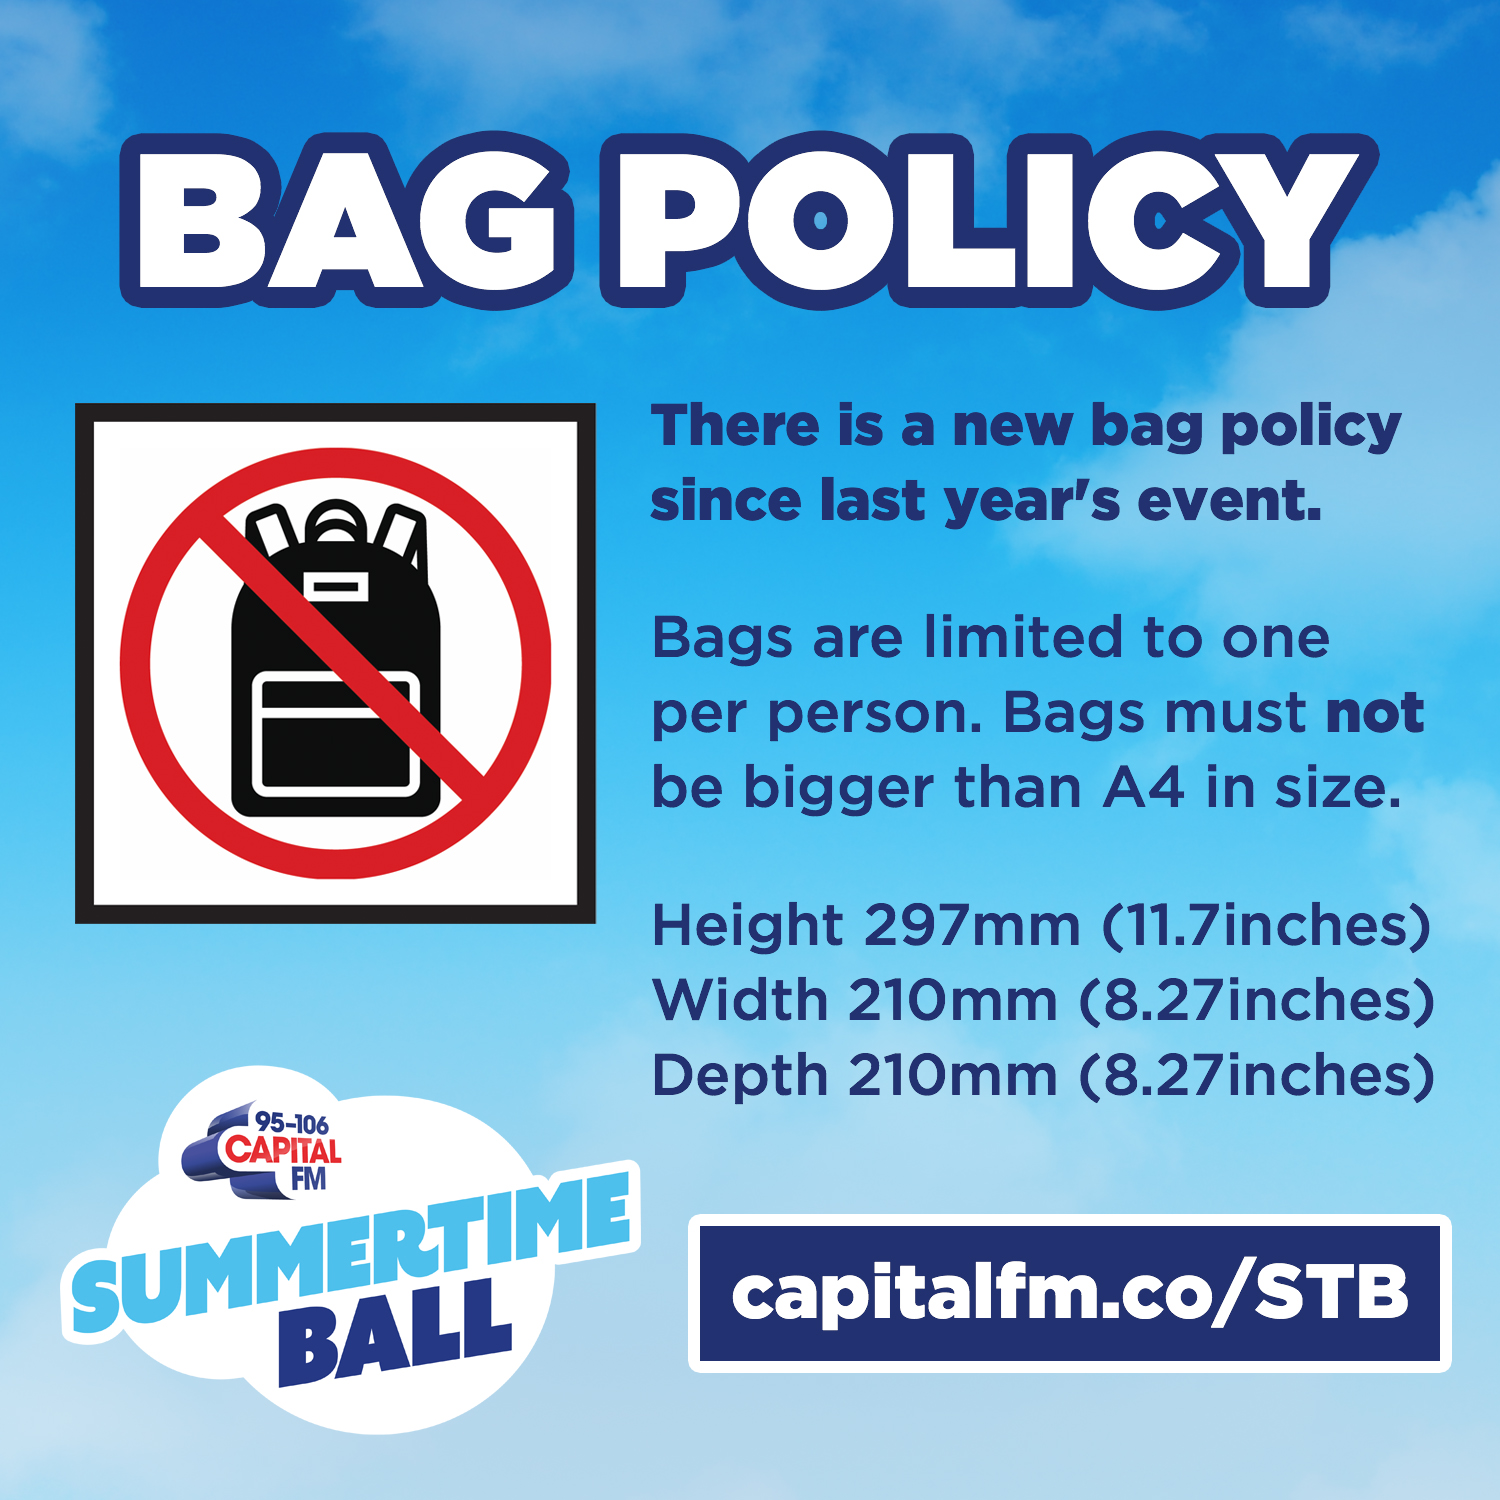 Capital's Summertime Ball 2019 Bag Policy